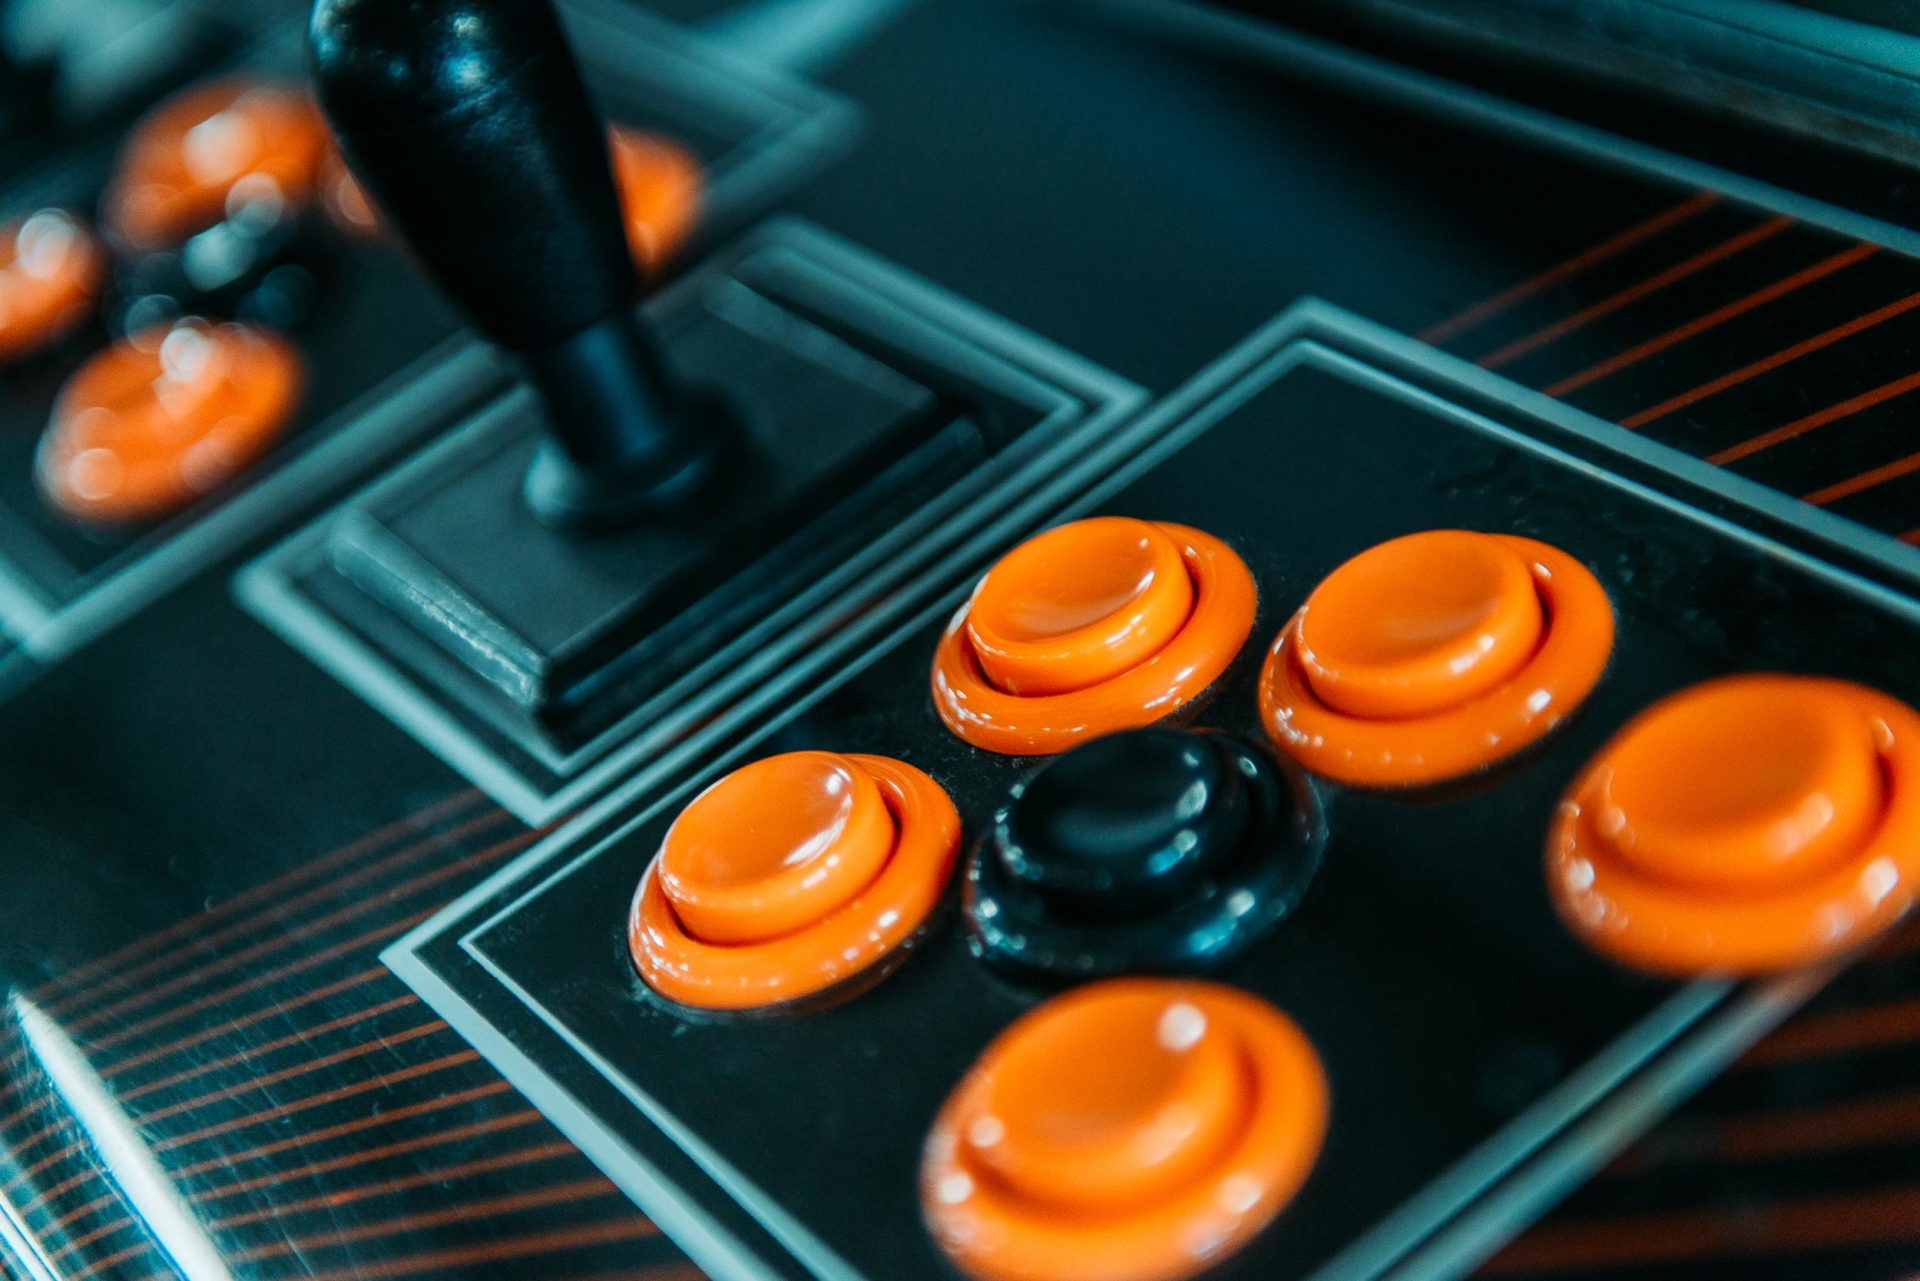 game buttons in black and orange